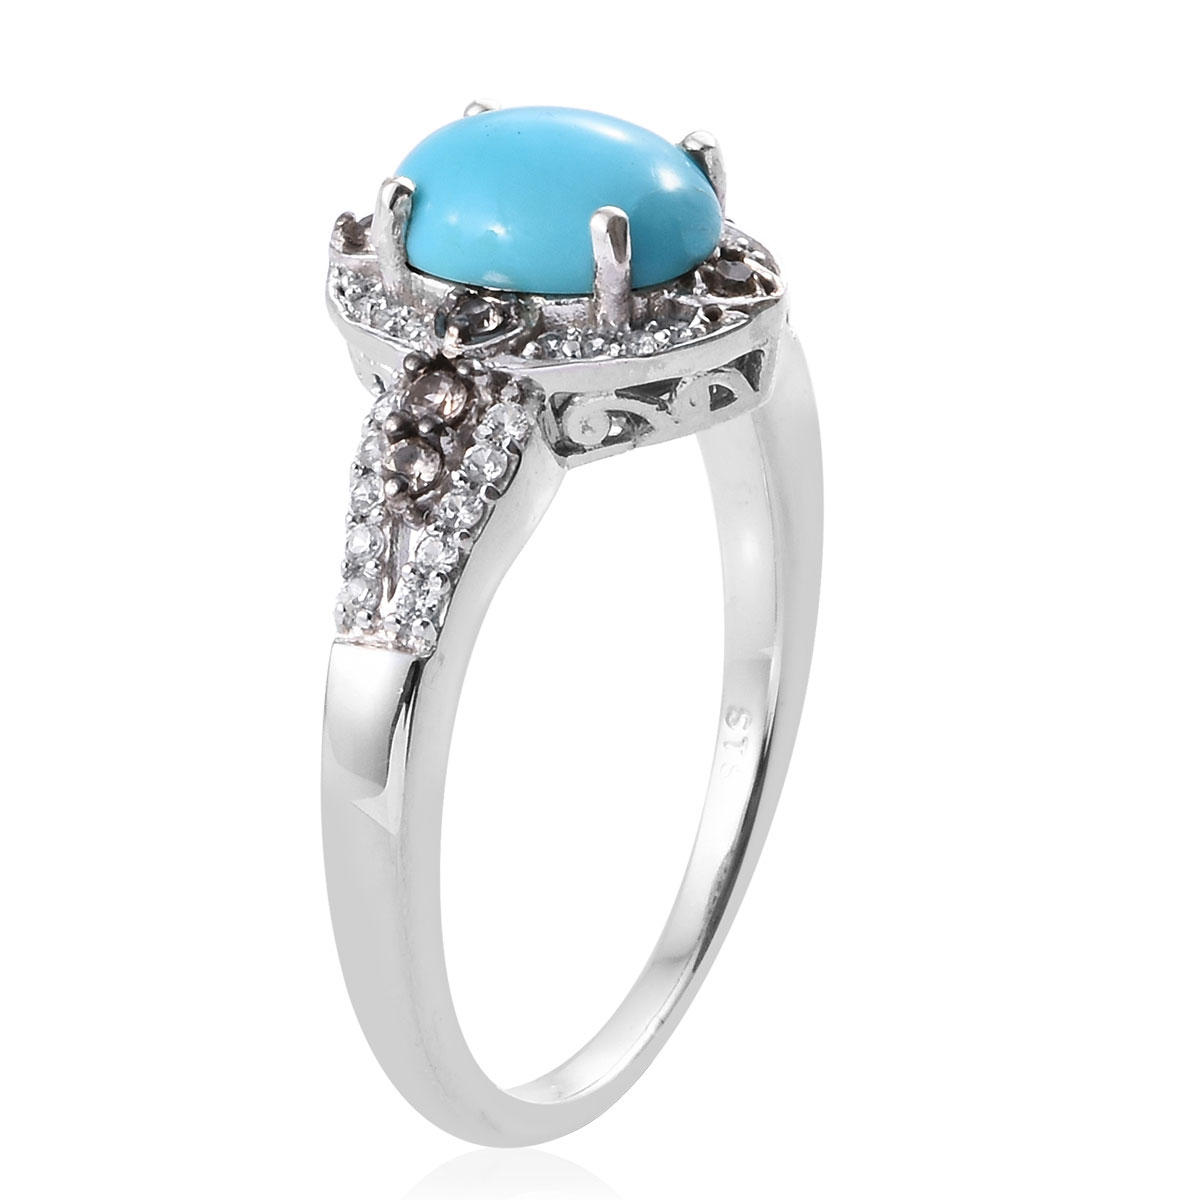 Arizona Sleeping Beauty Turquoise, Multi Gemstone Ring in Platinum Over Sterling Silver (Size 5.0) 2.11 ctw